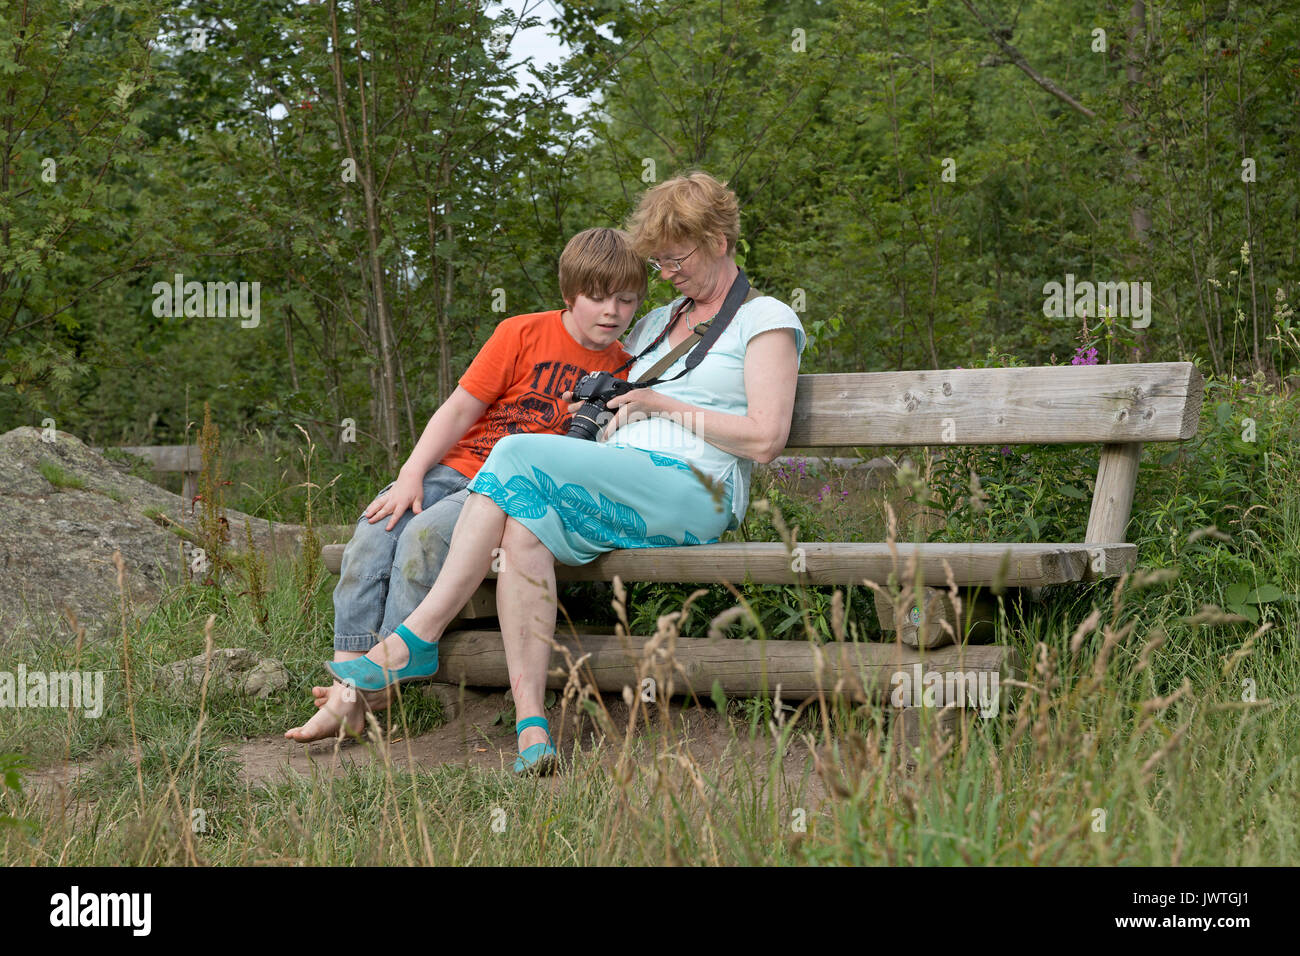 mother and son viewing their photos - Stock Image